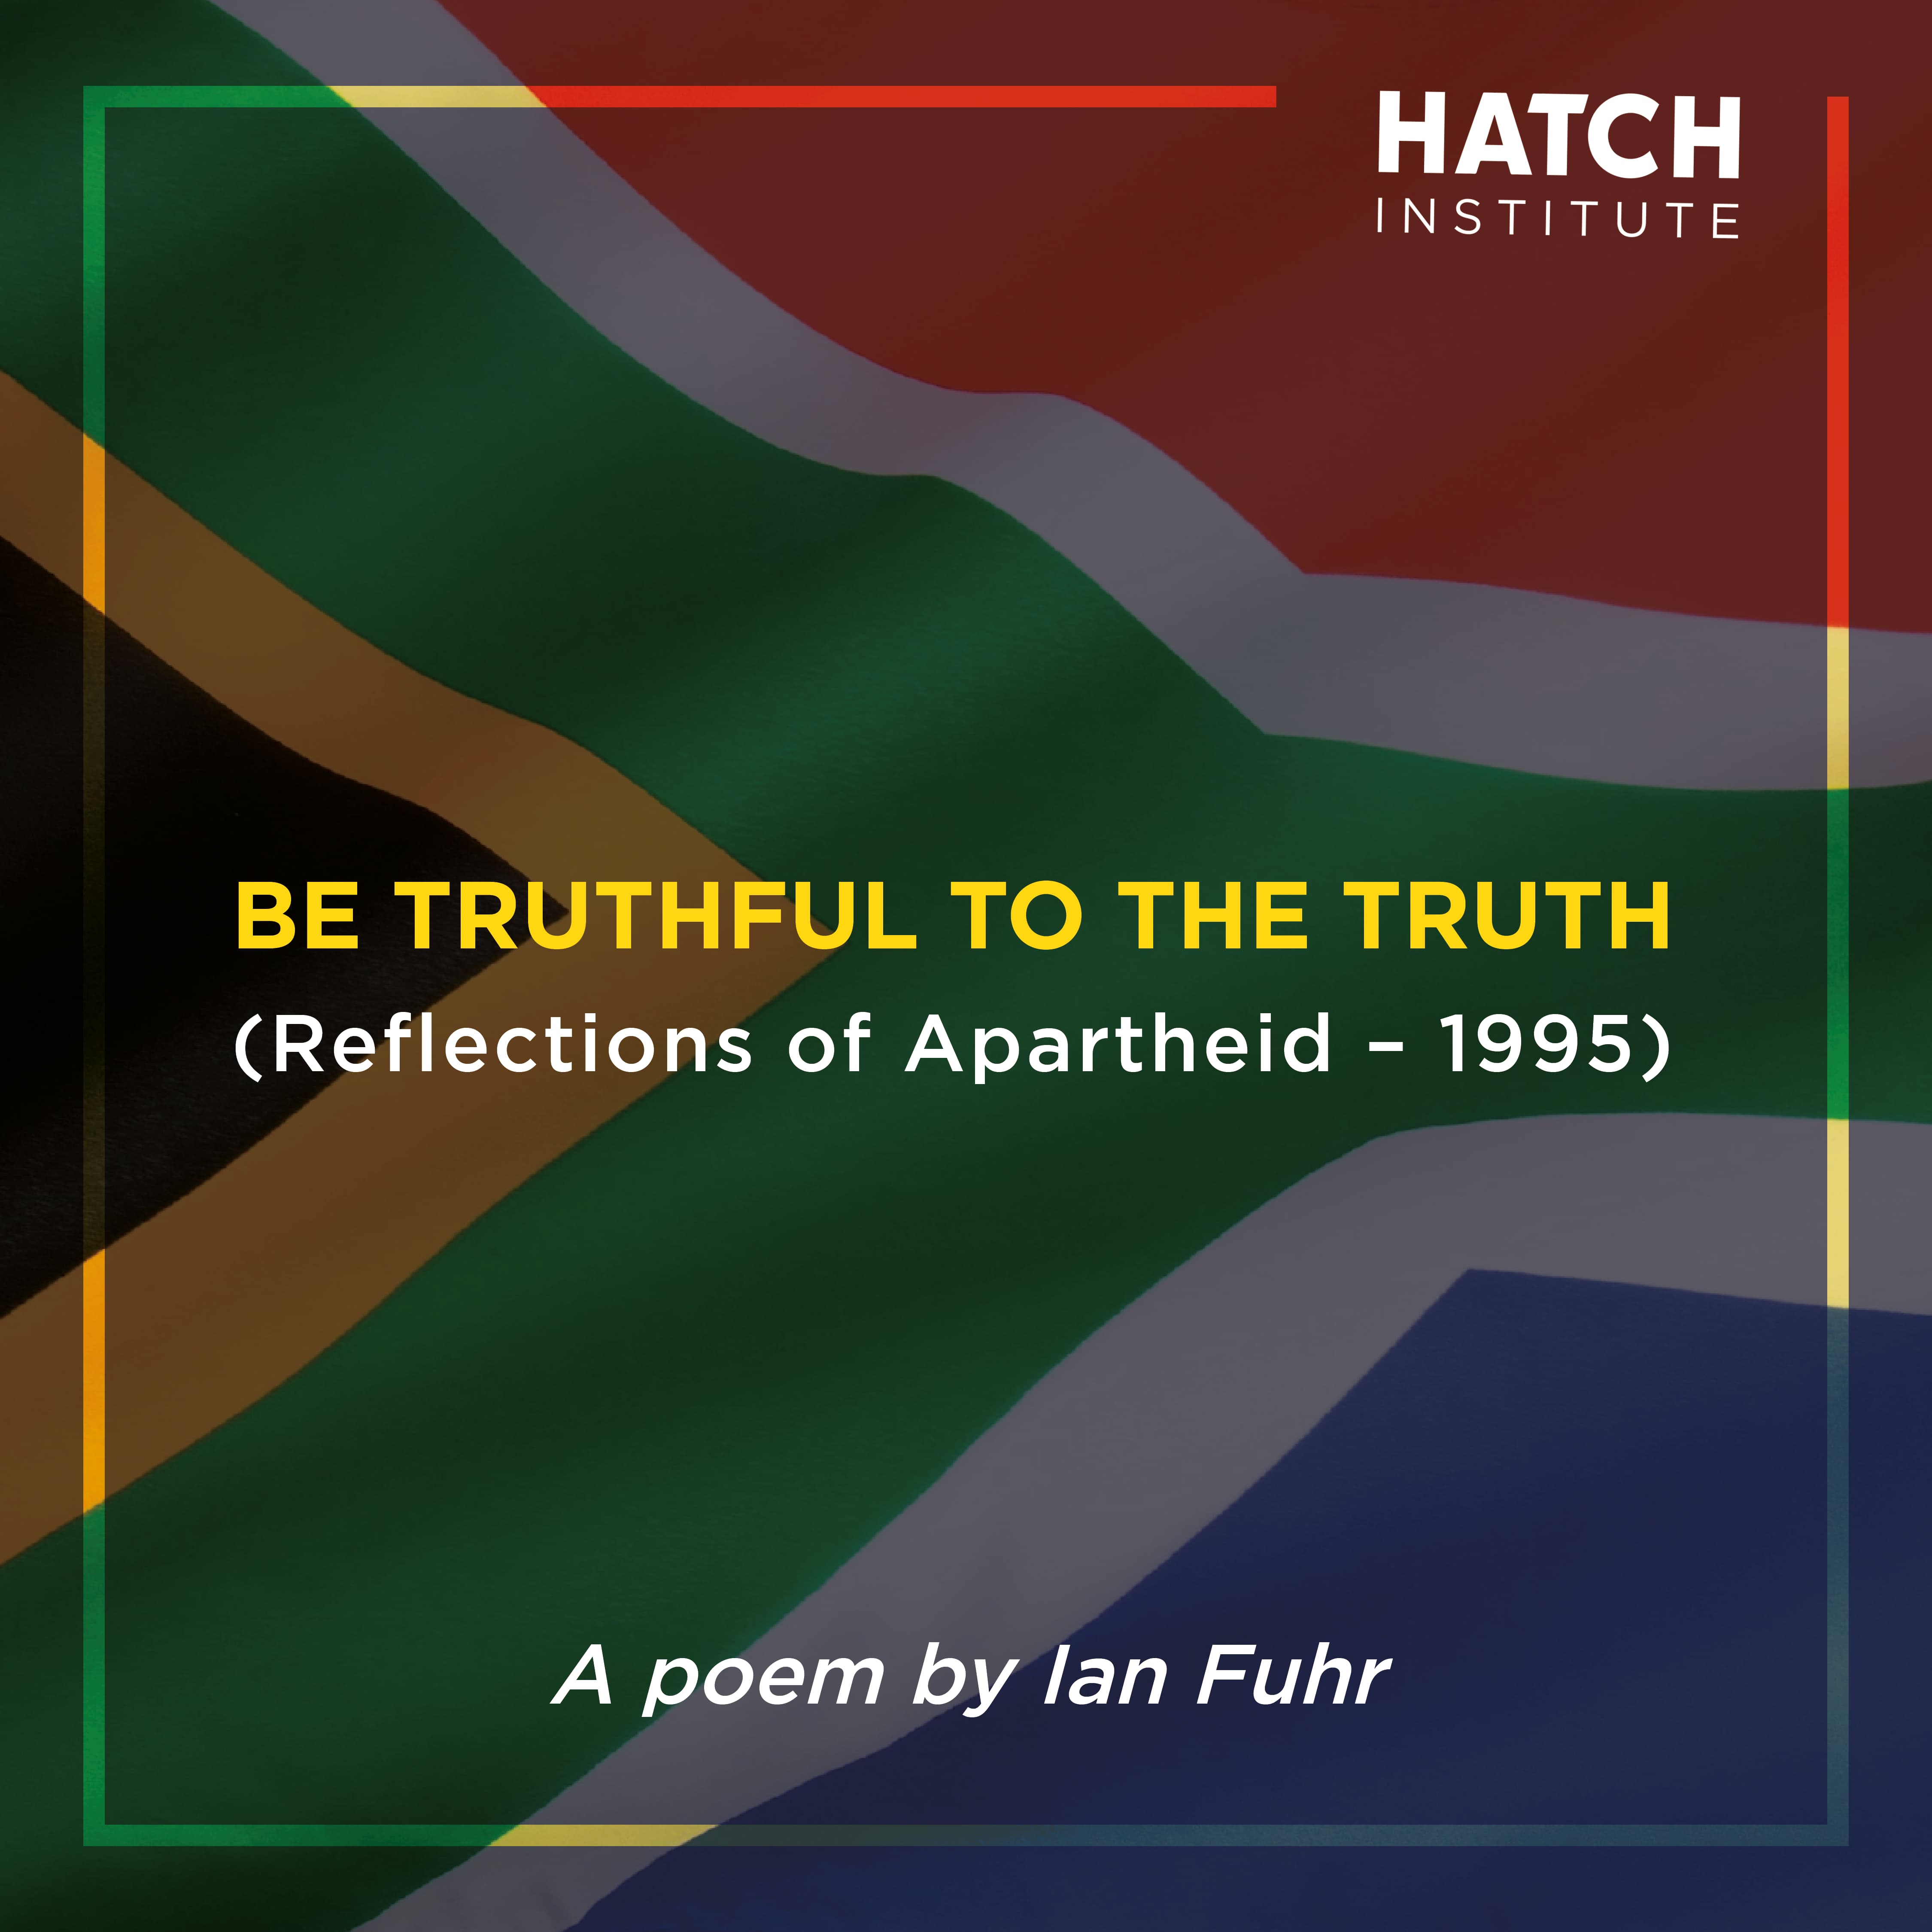 BE TRUTHFUL TO THE TRUTH A poem by Ian Fuhr